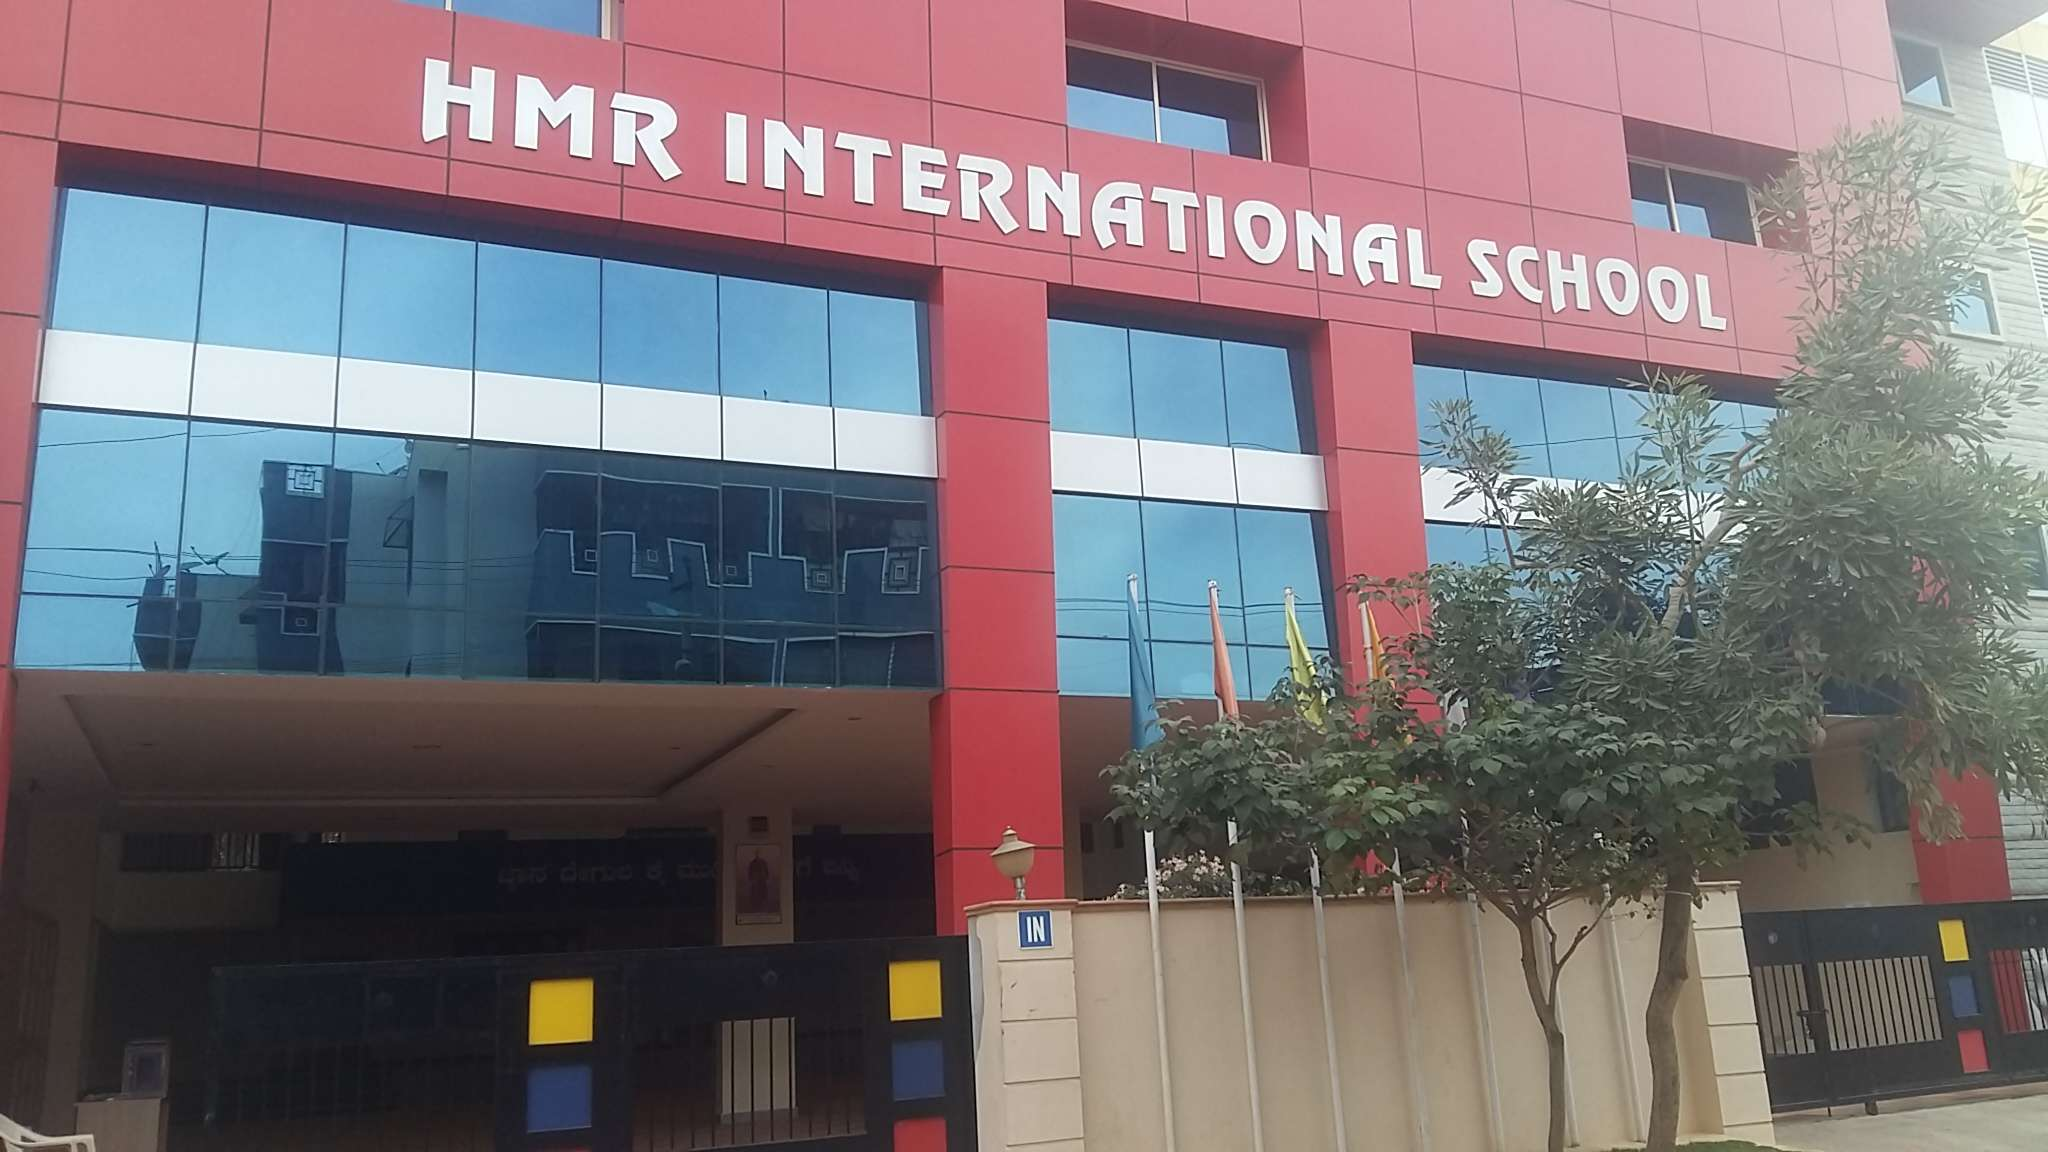 H M R International School 41 1 9th Main Road 11th Cross Hennur Maruthi Layout H B R Layout Bangalore 560 043 Kalyan Nagar Post 830463